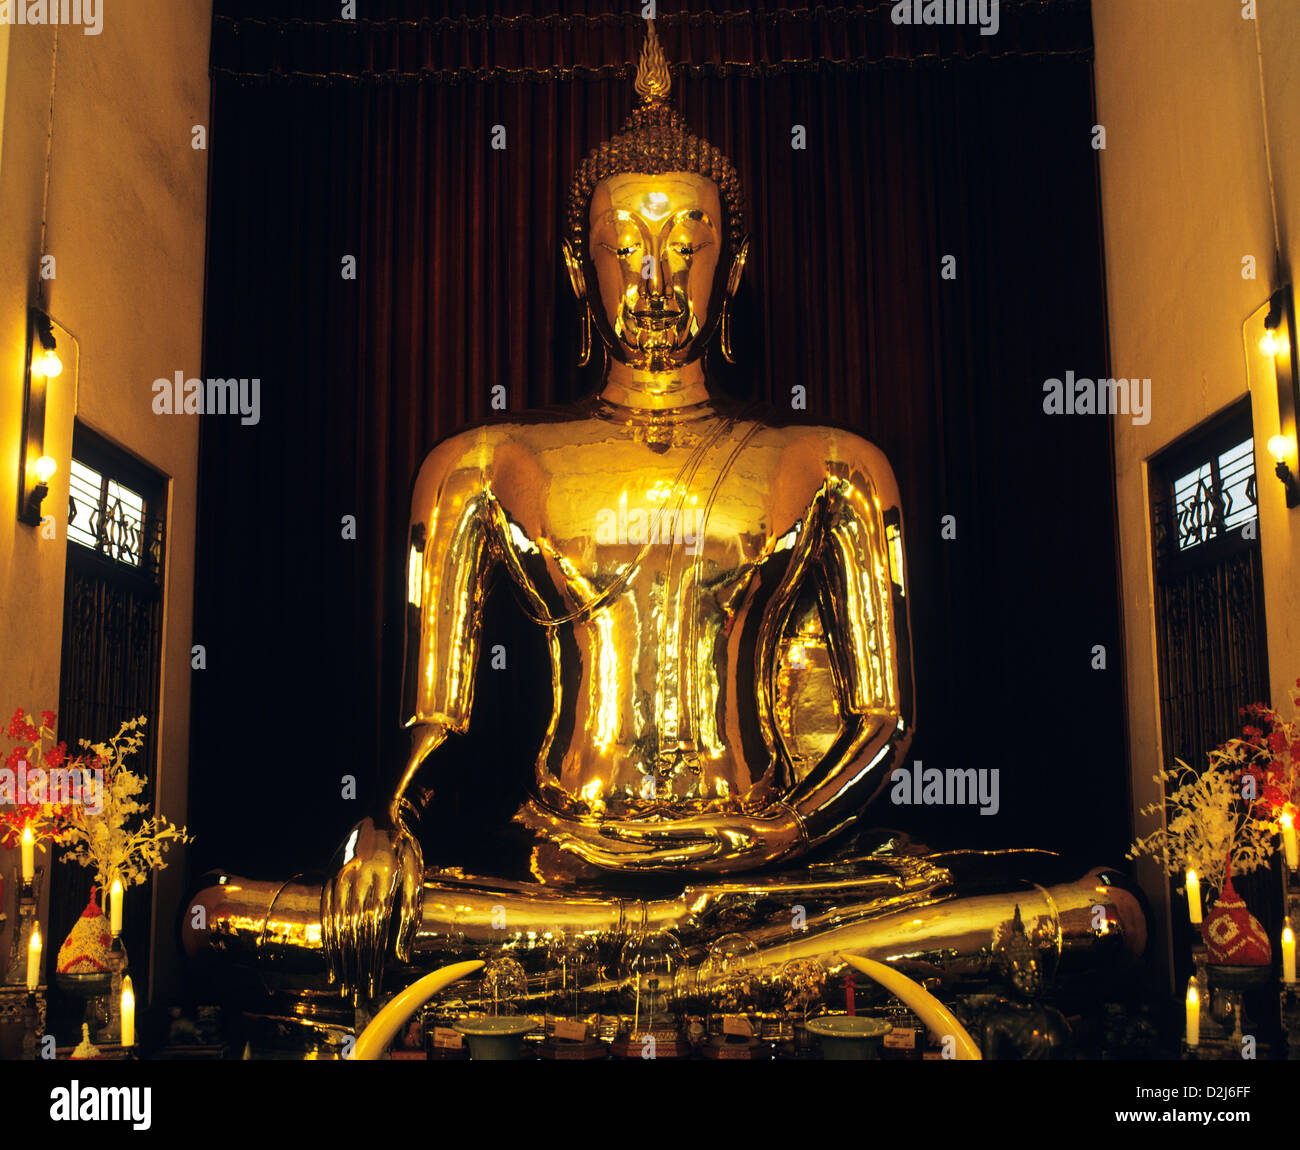 Thailand, Bangkok, Wat Traimit, 5.5 Tons Golden Buddha Made Of Solid Stock Ph...